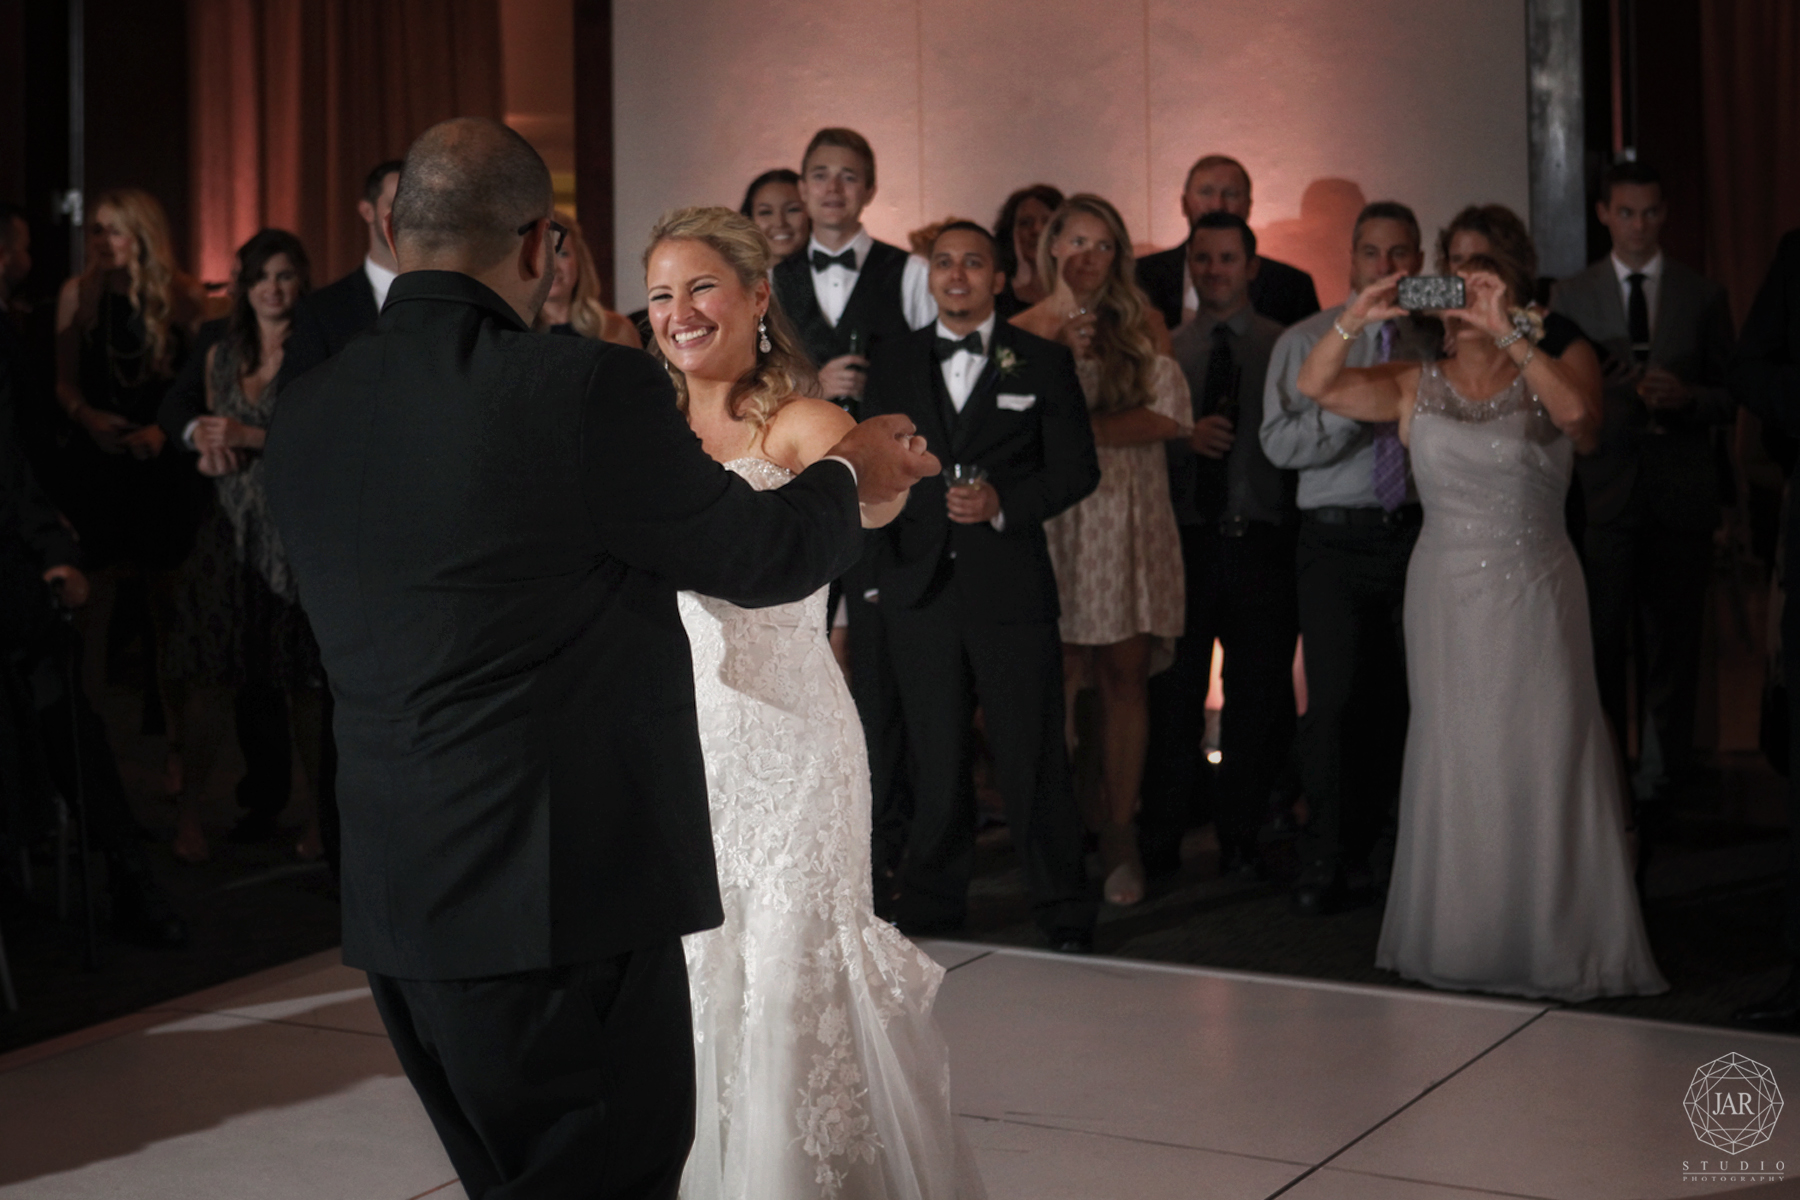 25-bride-groom-first-dance-orlando-museum-photographer.JPG